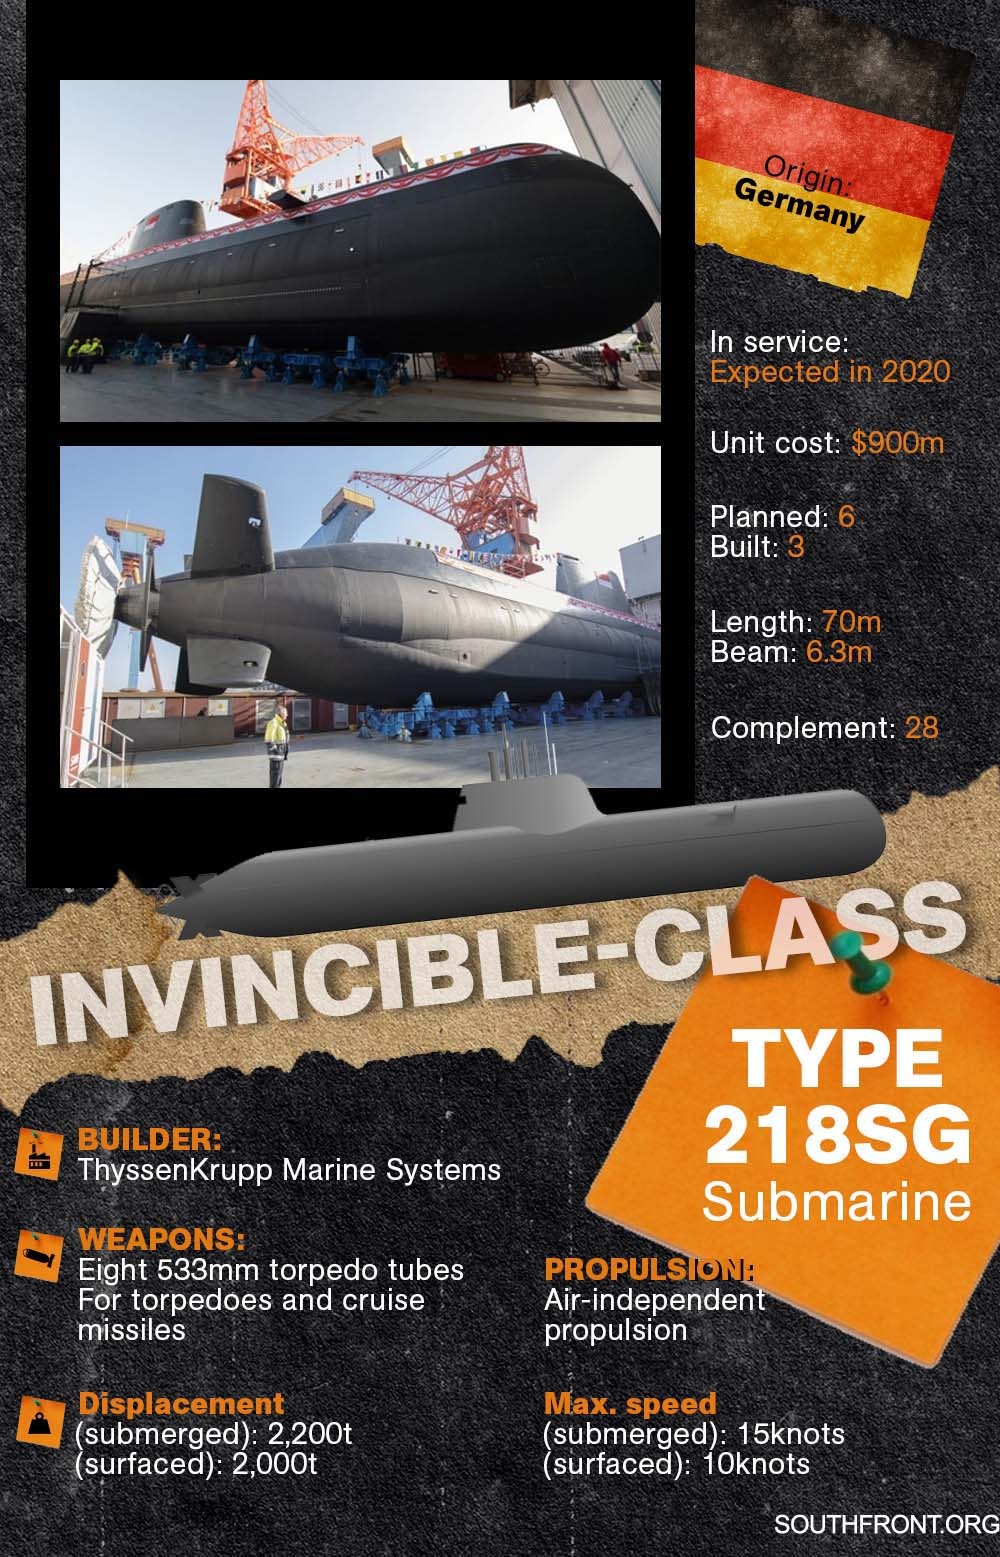 Invincible-Class Submarine (Infographics)